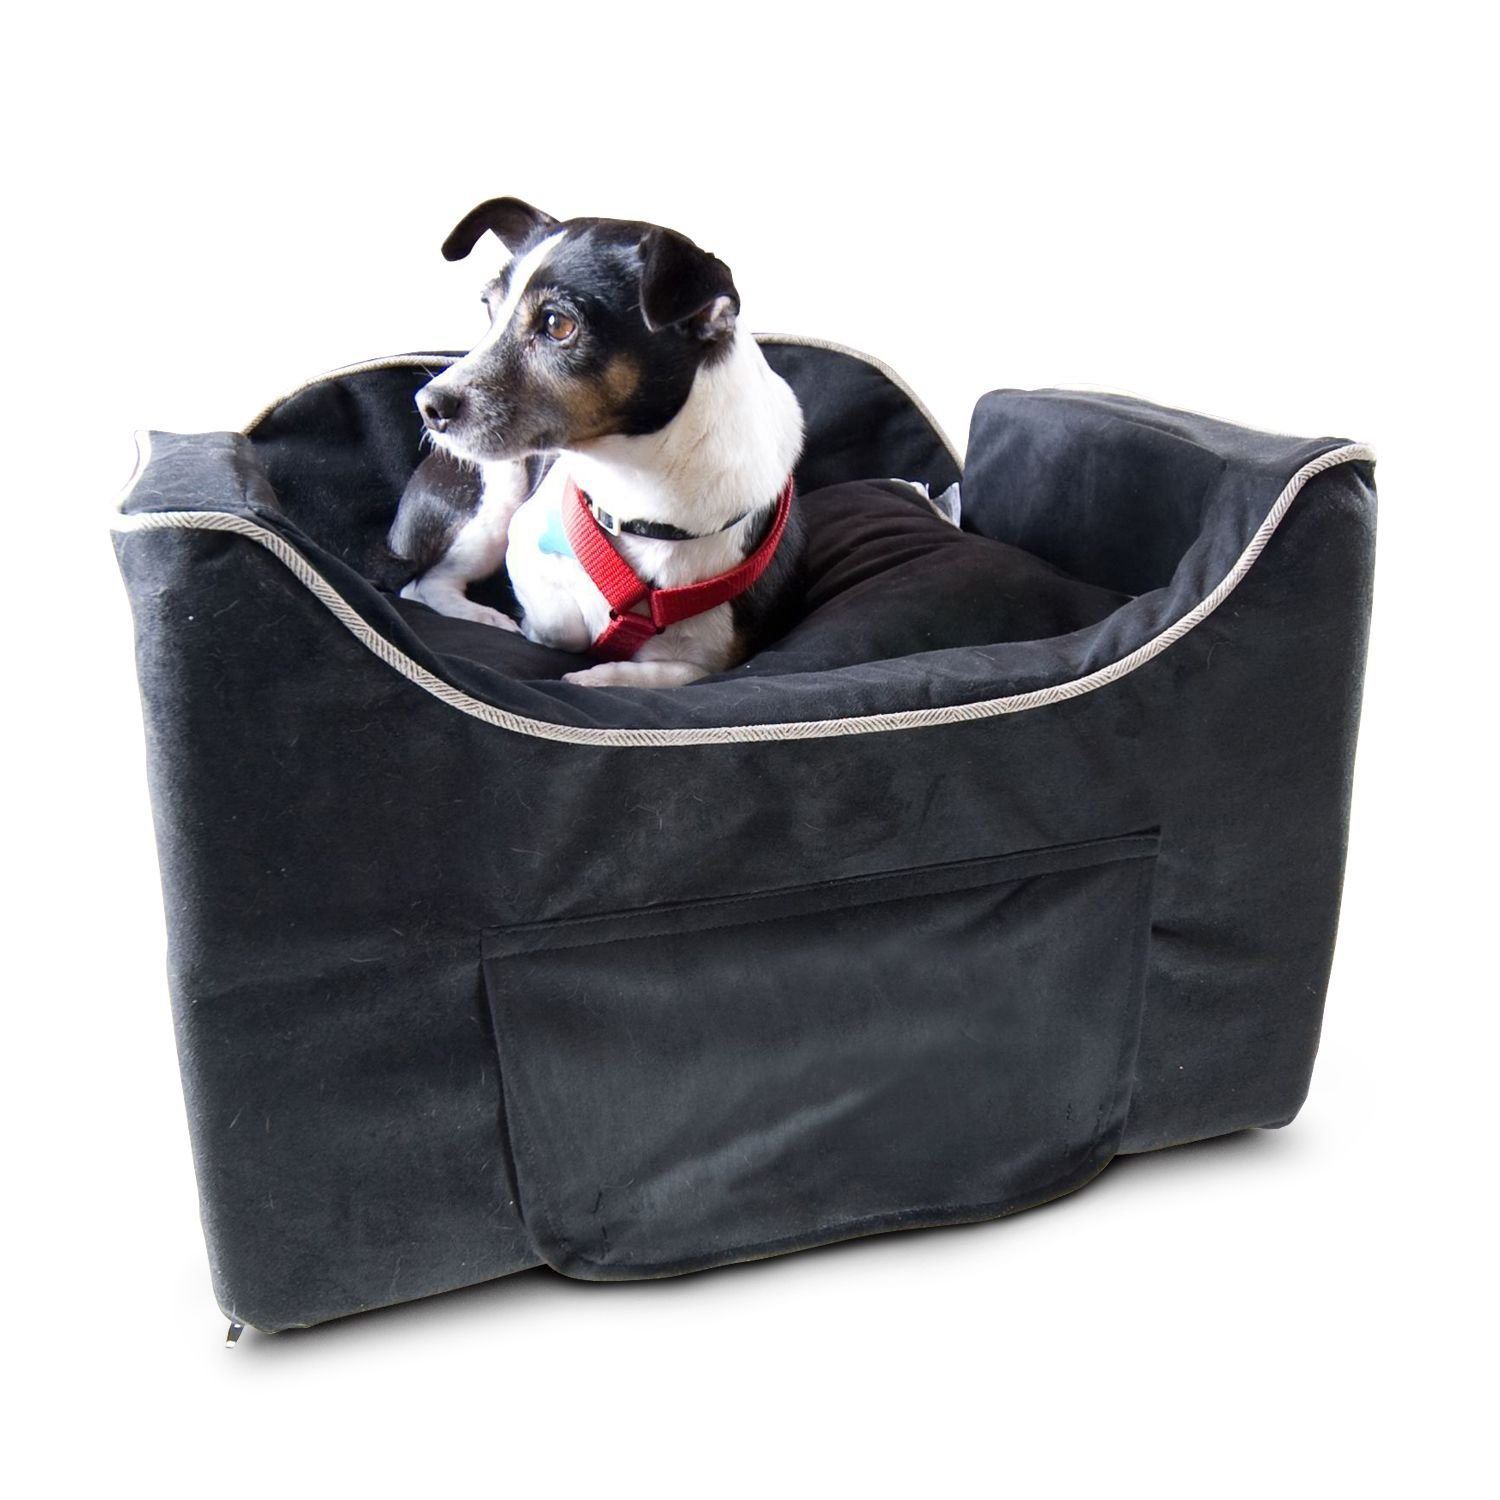 Snoozer Small Luxury Lookout Ii Pet Car Seat, Black/Herringbone Microsuede